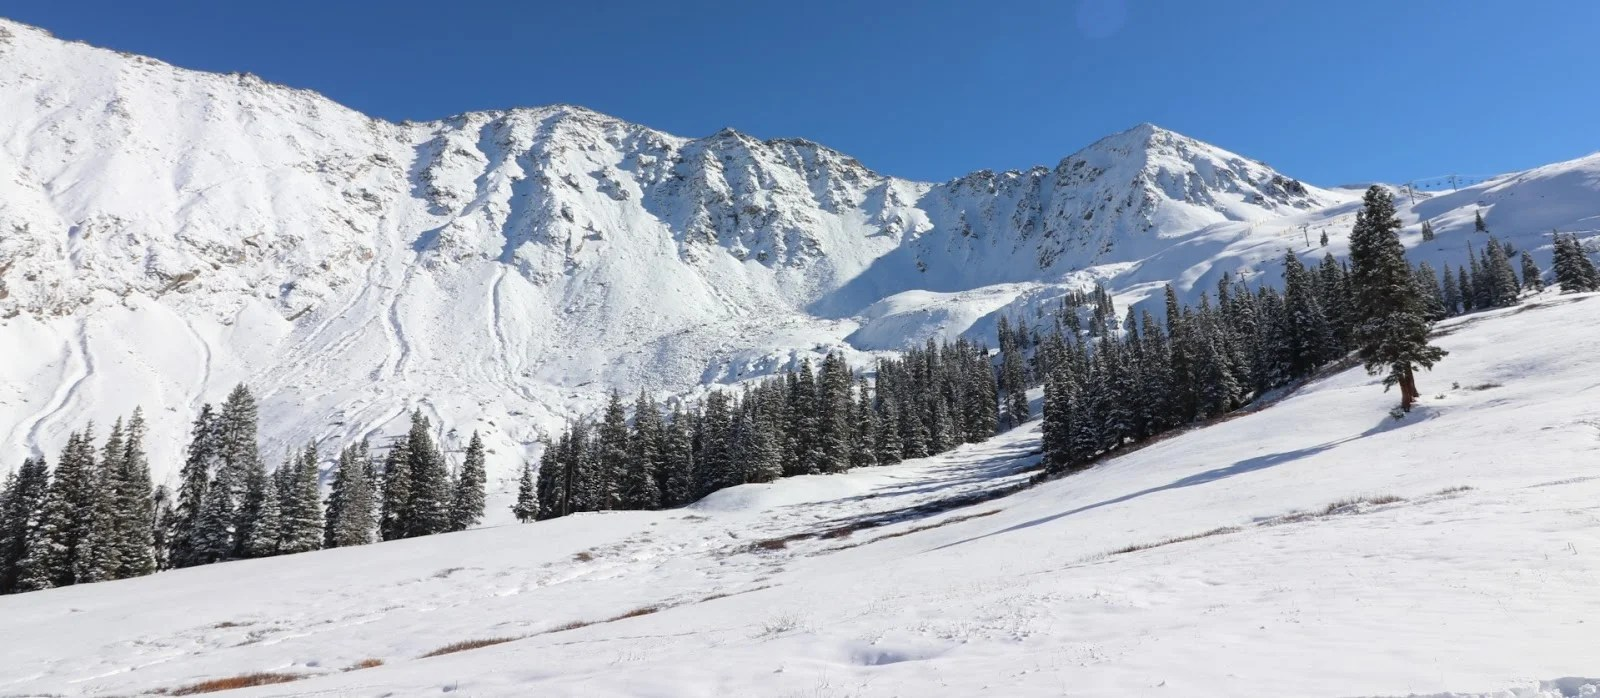 Winter Is Here: Ski Season Starts Early as More Colorado Resorts Open